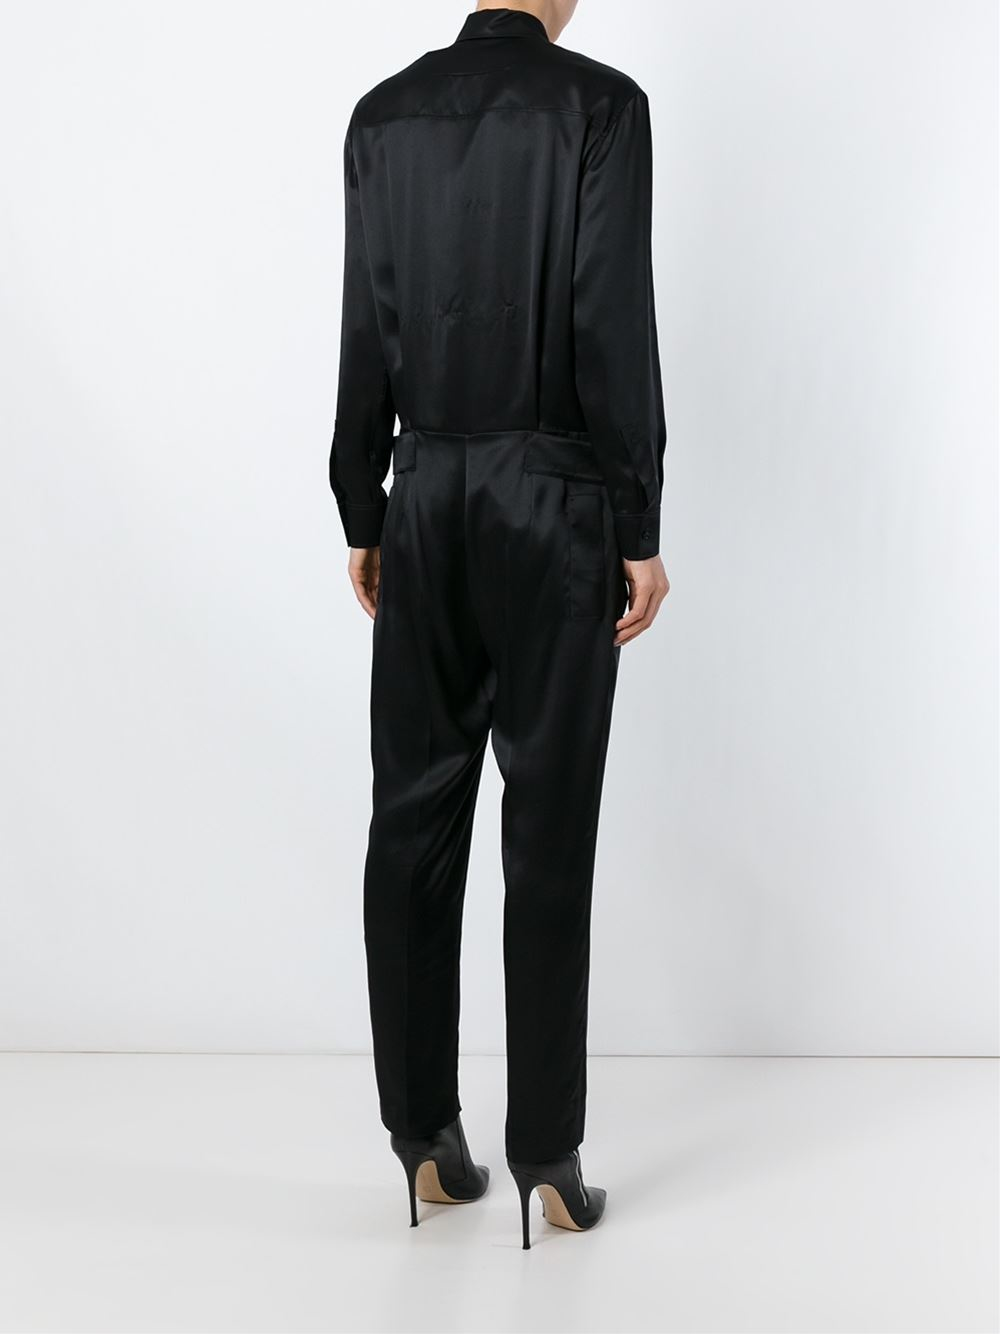 56092e45978a Lyst - Givenchy Military Style Jumpsuit in Black